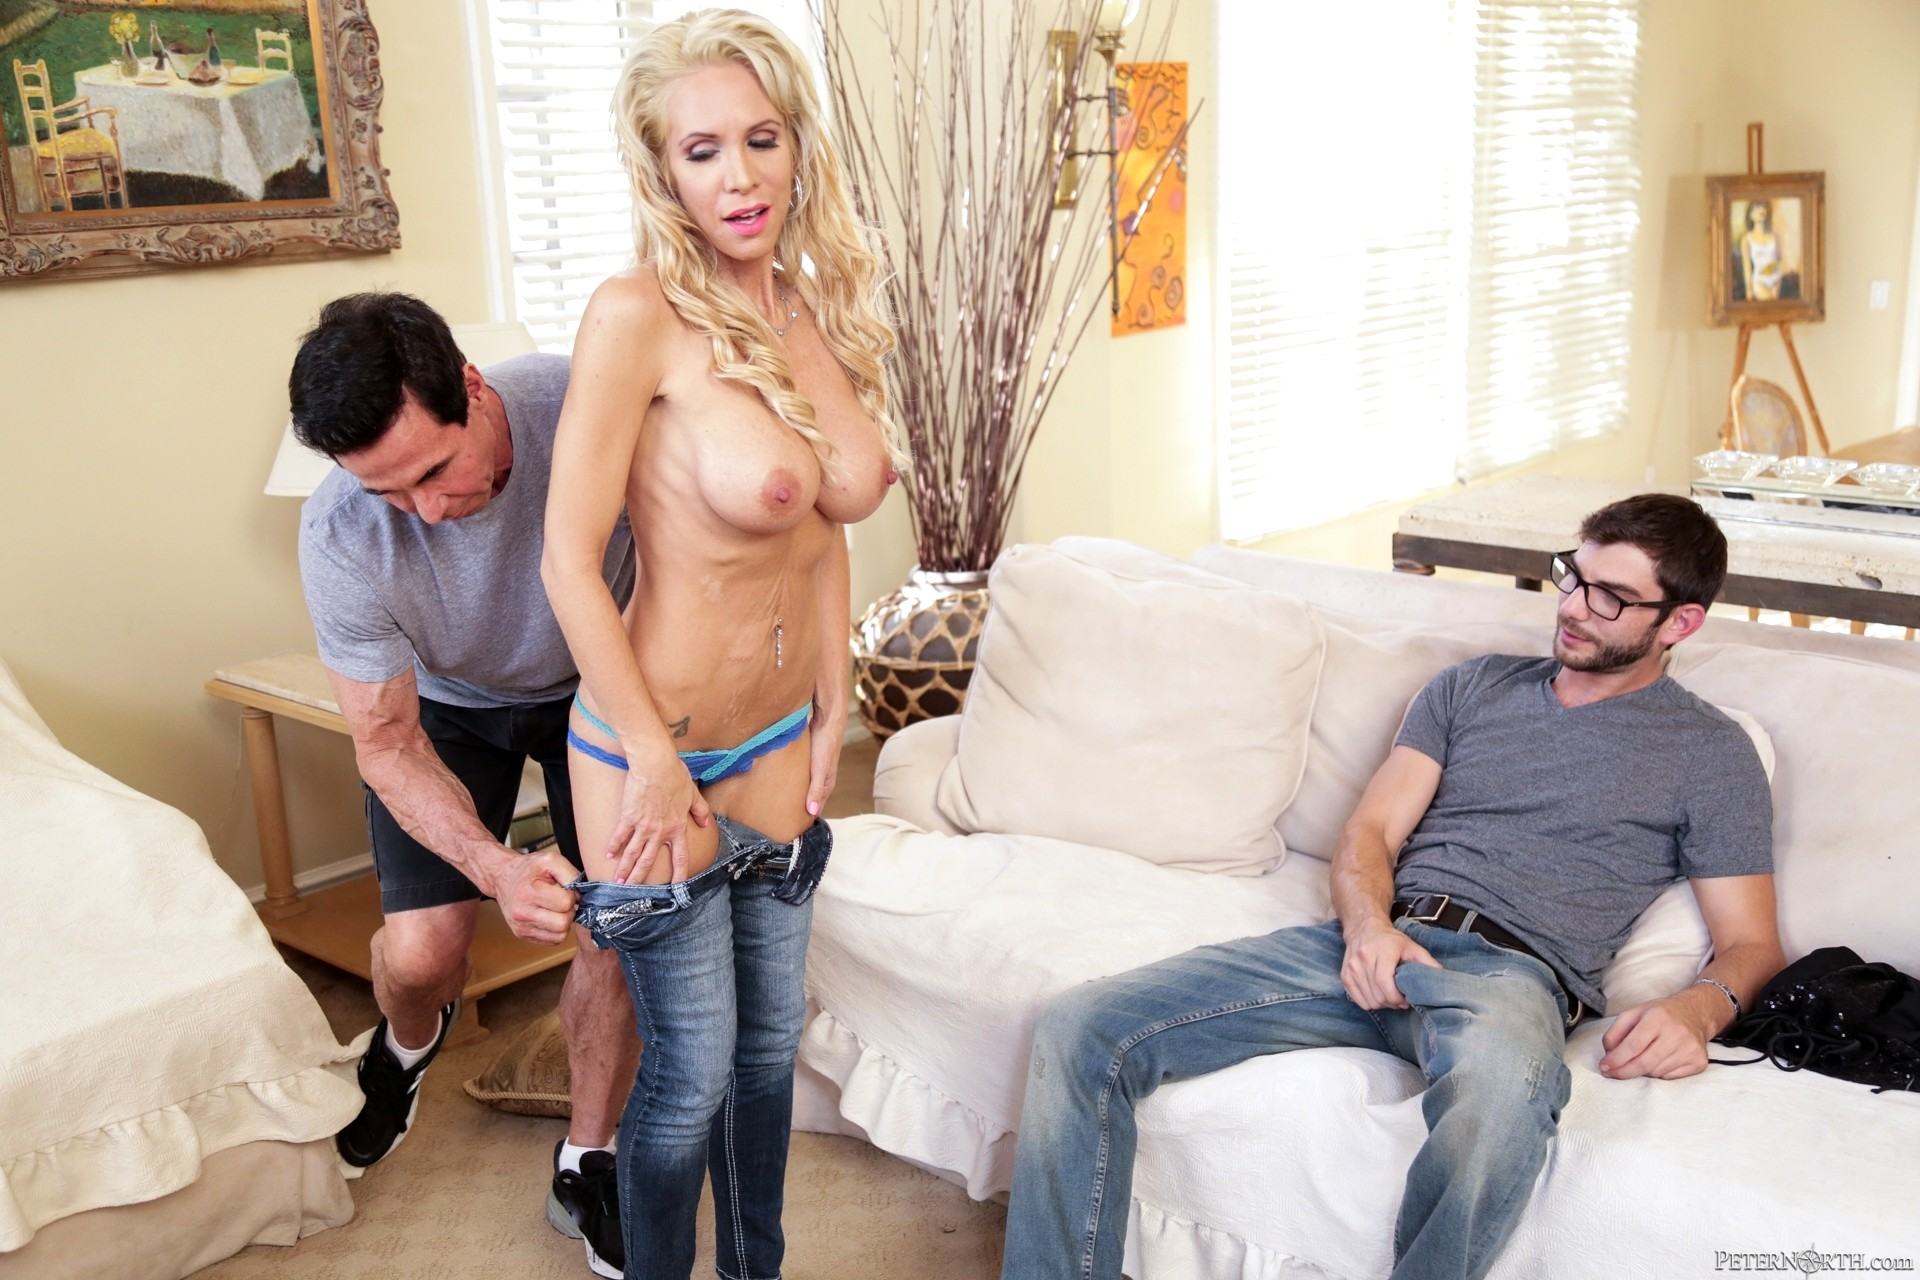 The cuckold tube hd her red